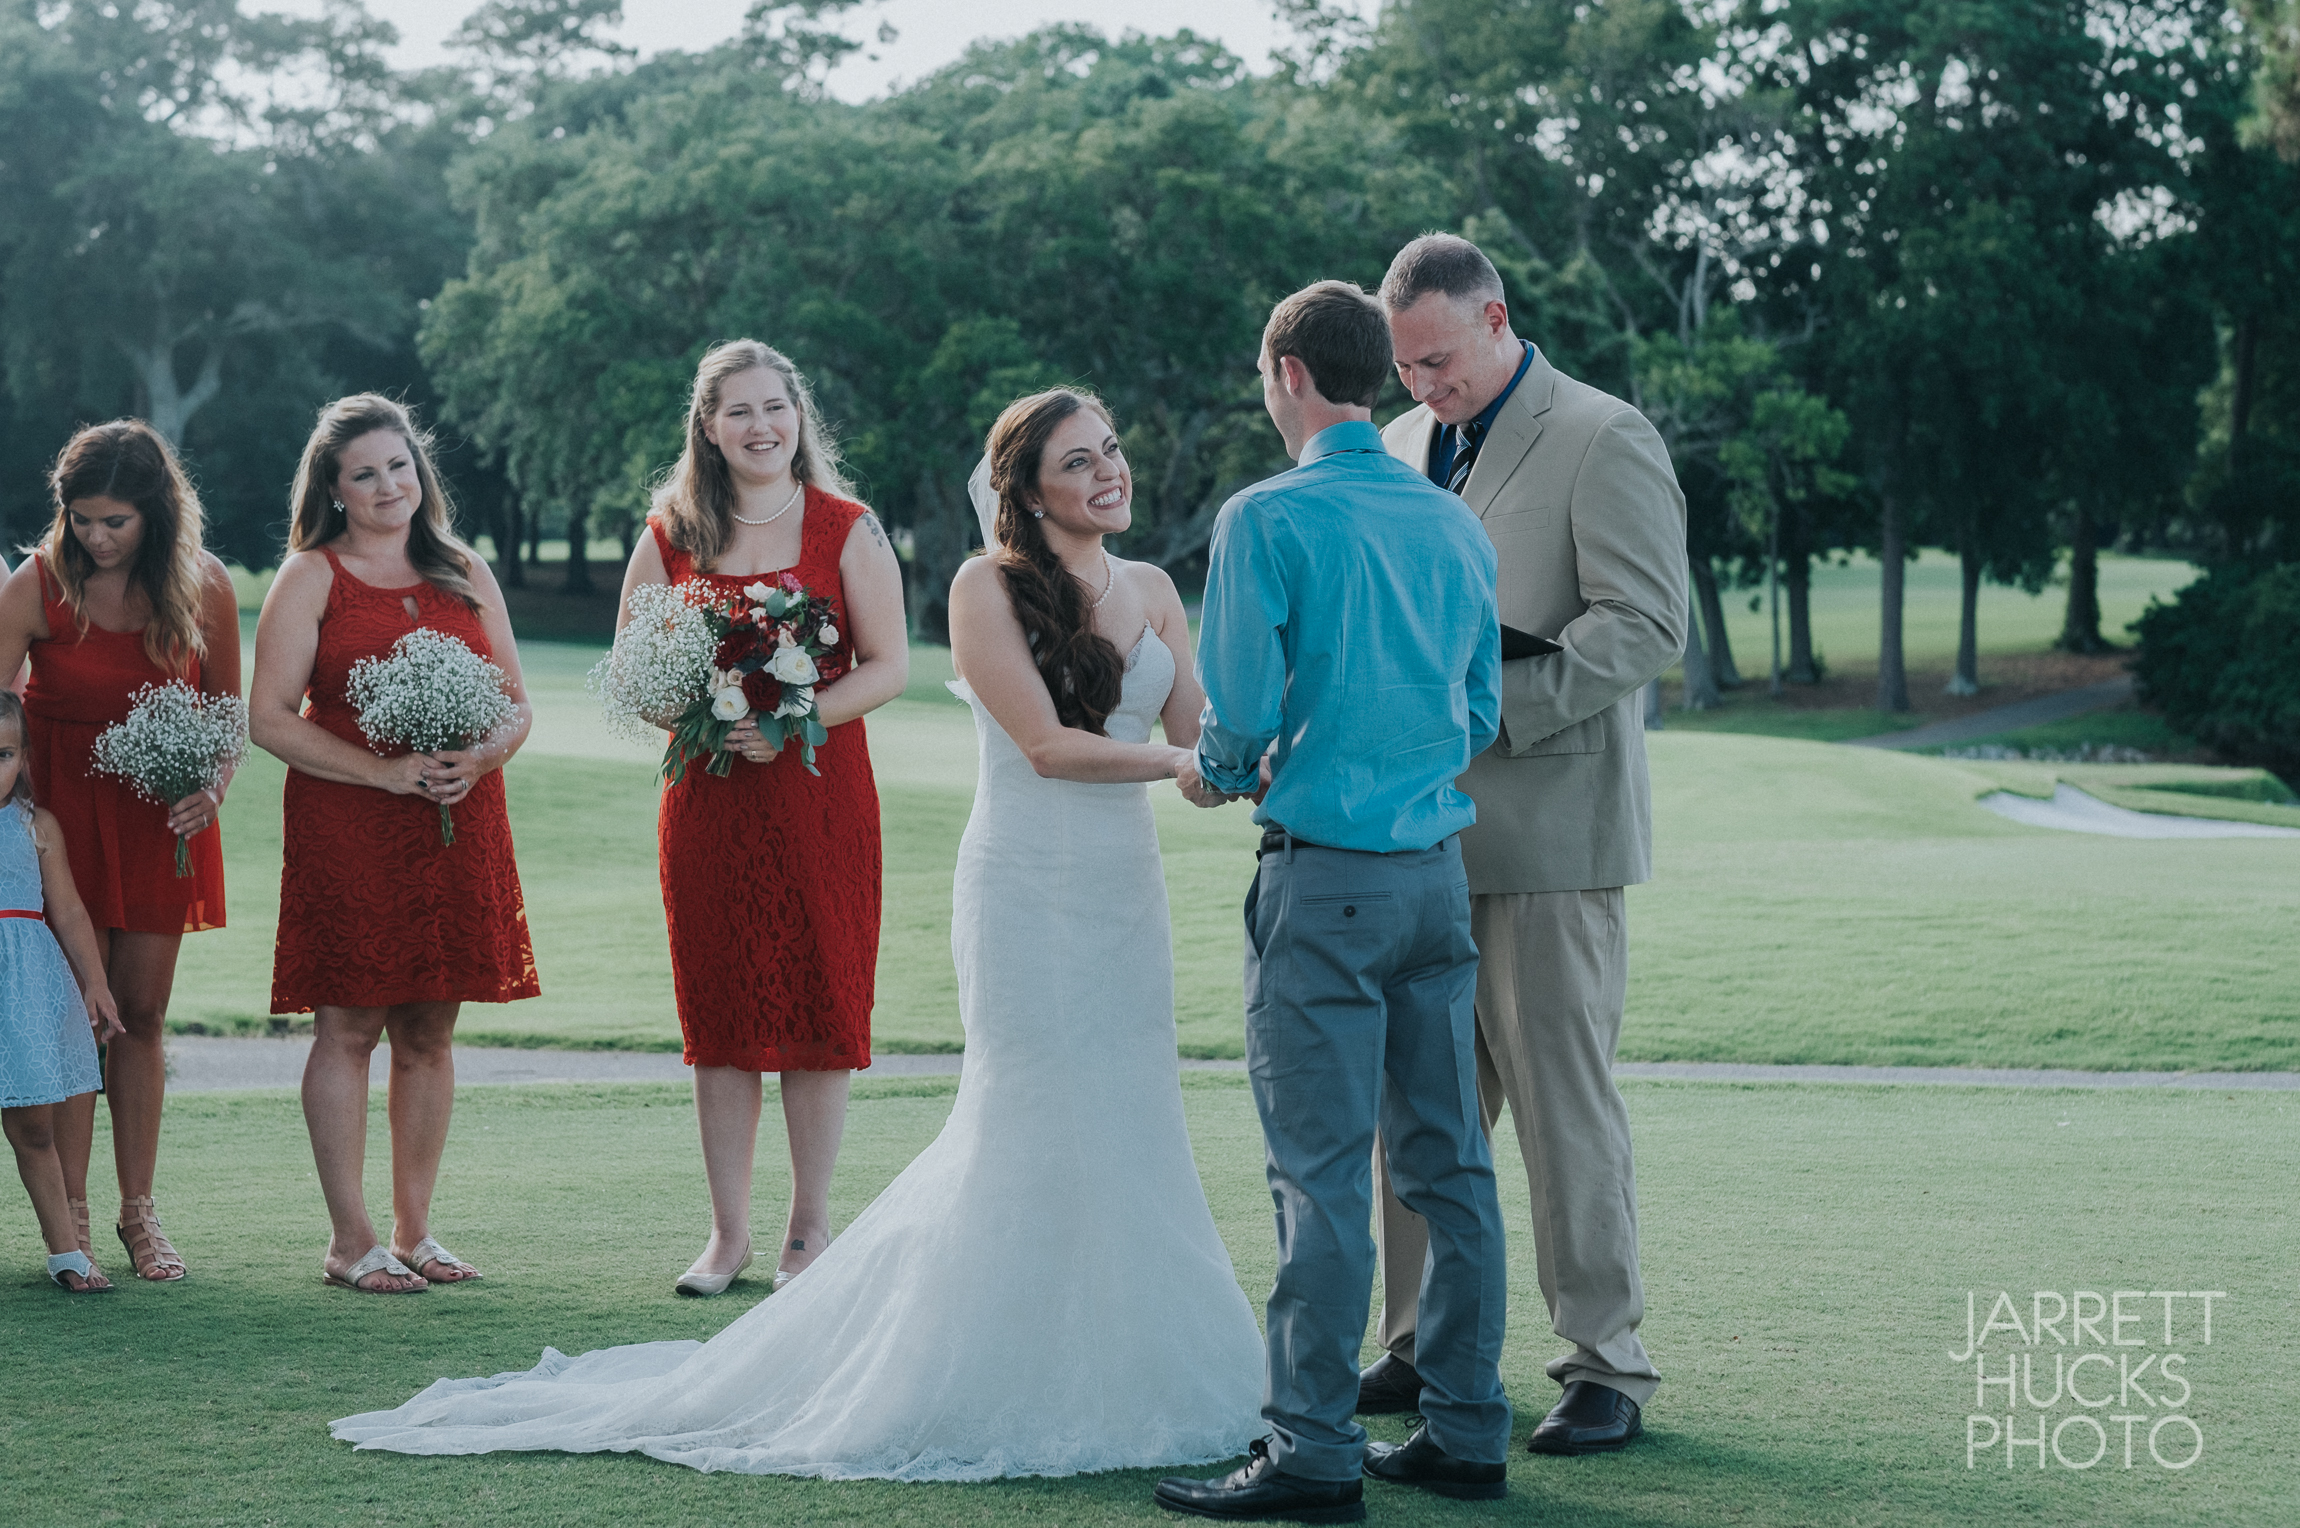 Austin and Nikki Wedding-49.jpg